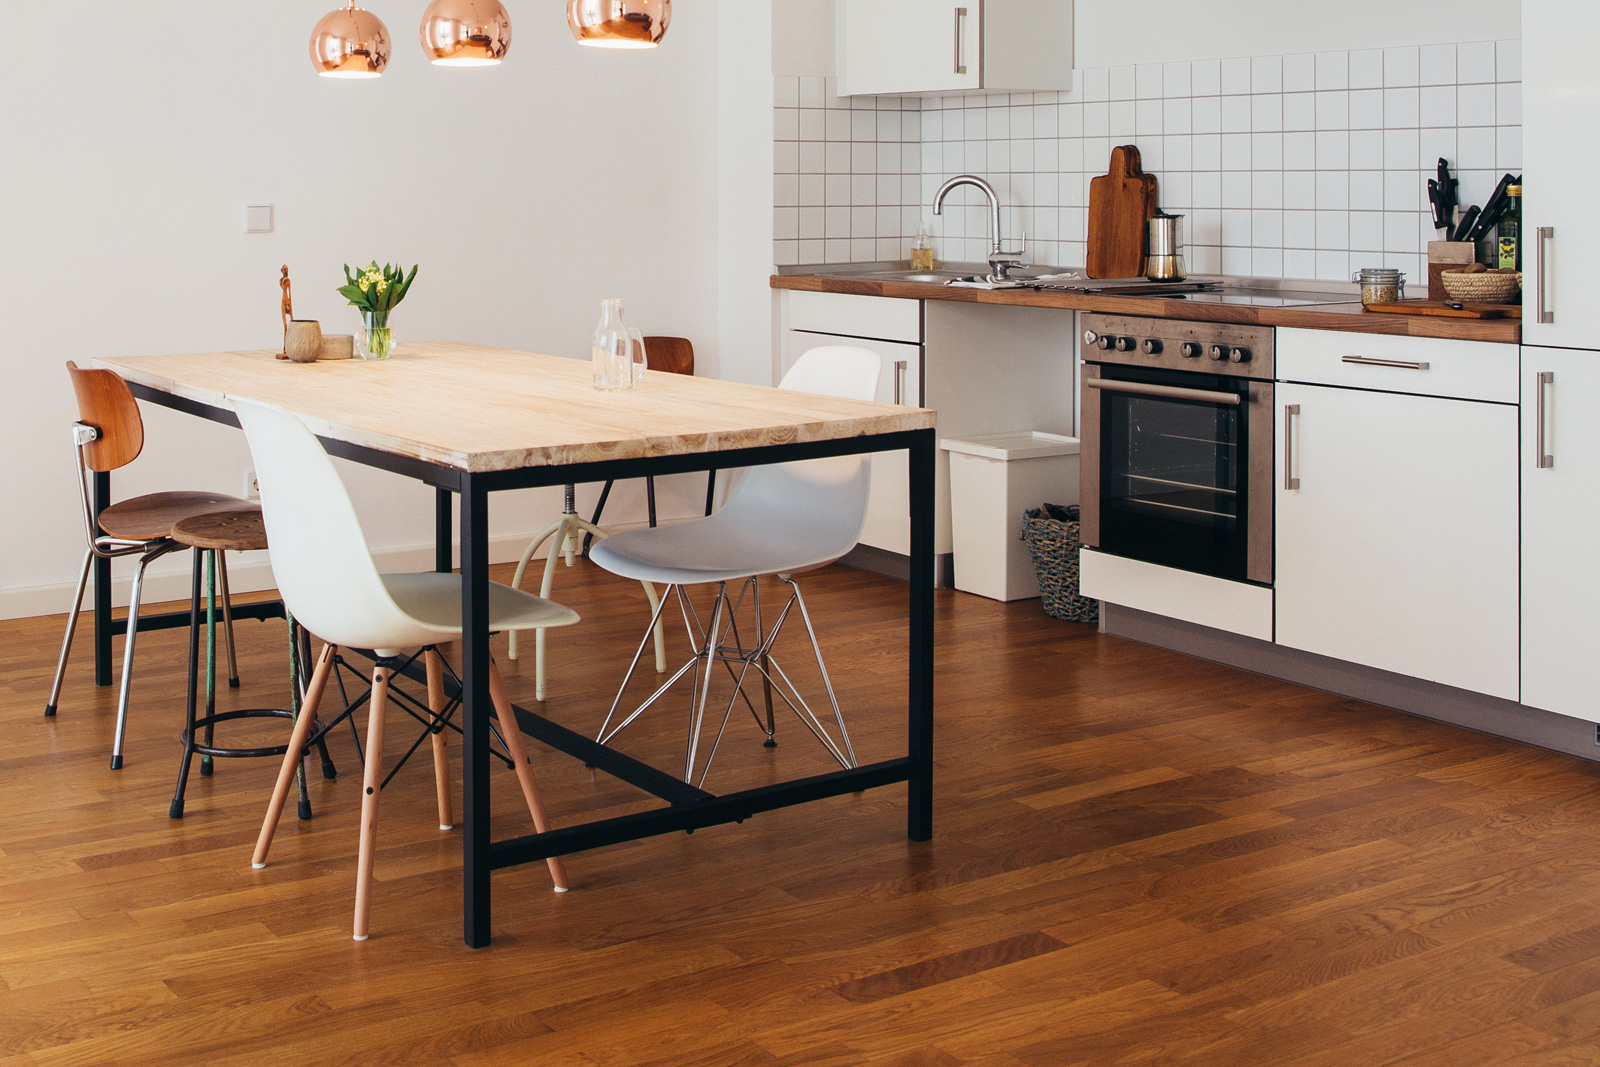 Wooden Floors In Kitchens Kitchen Floors Best Kitchen Flooring Materials Houselogic